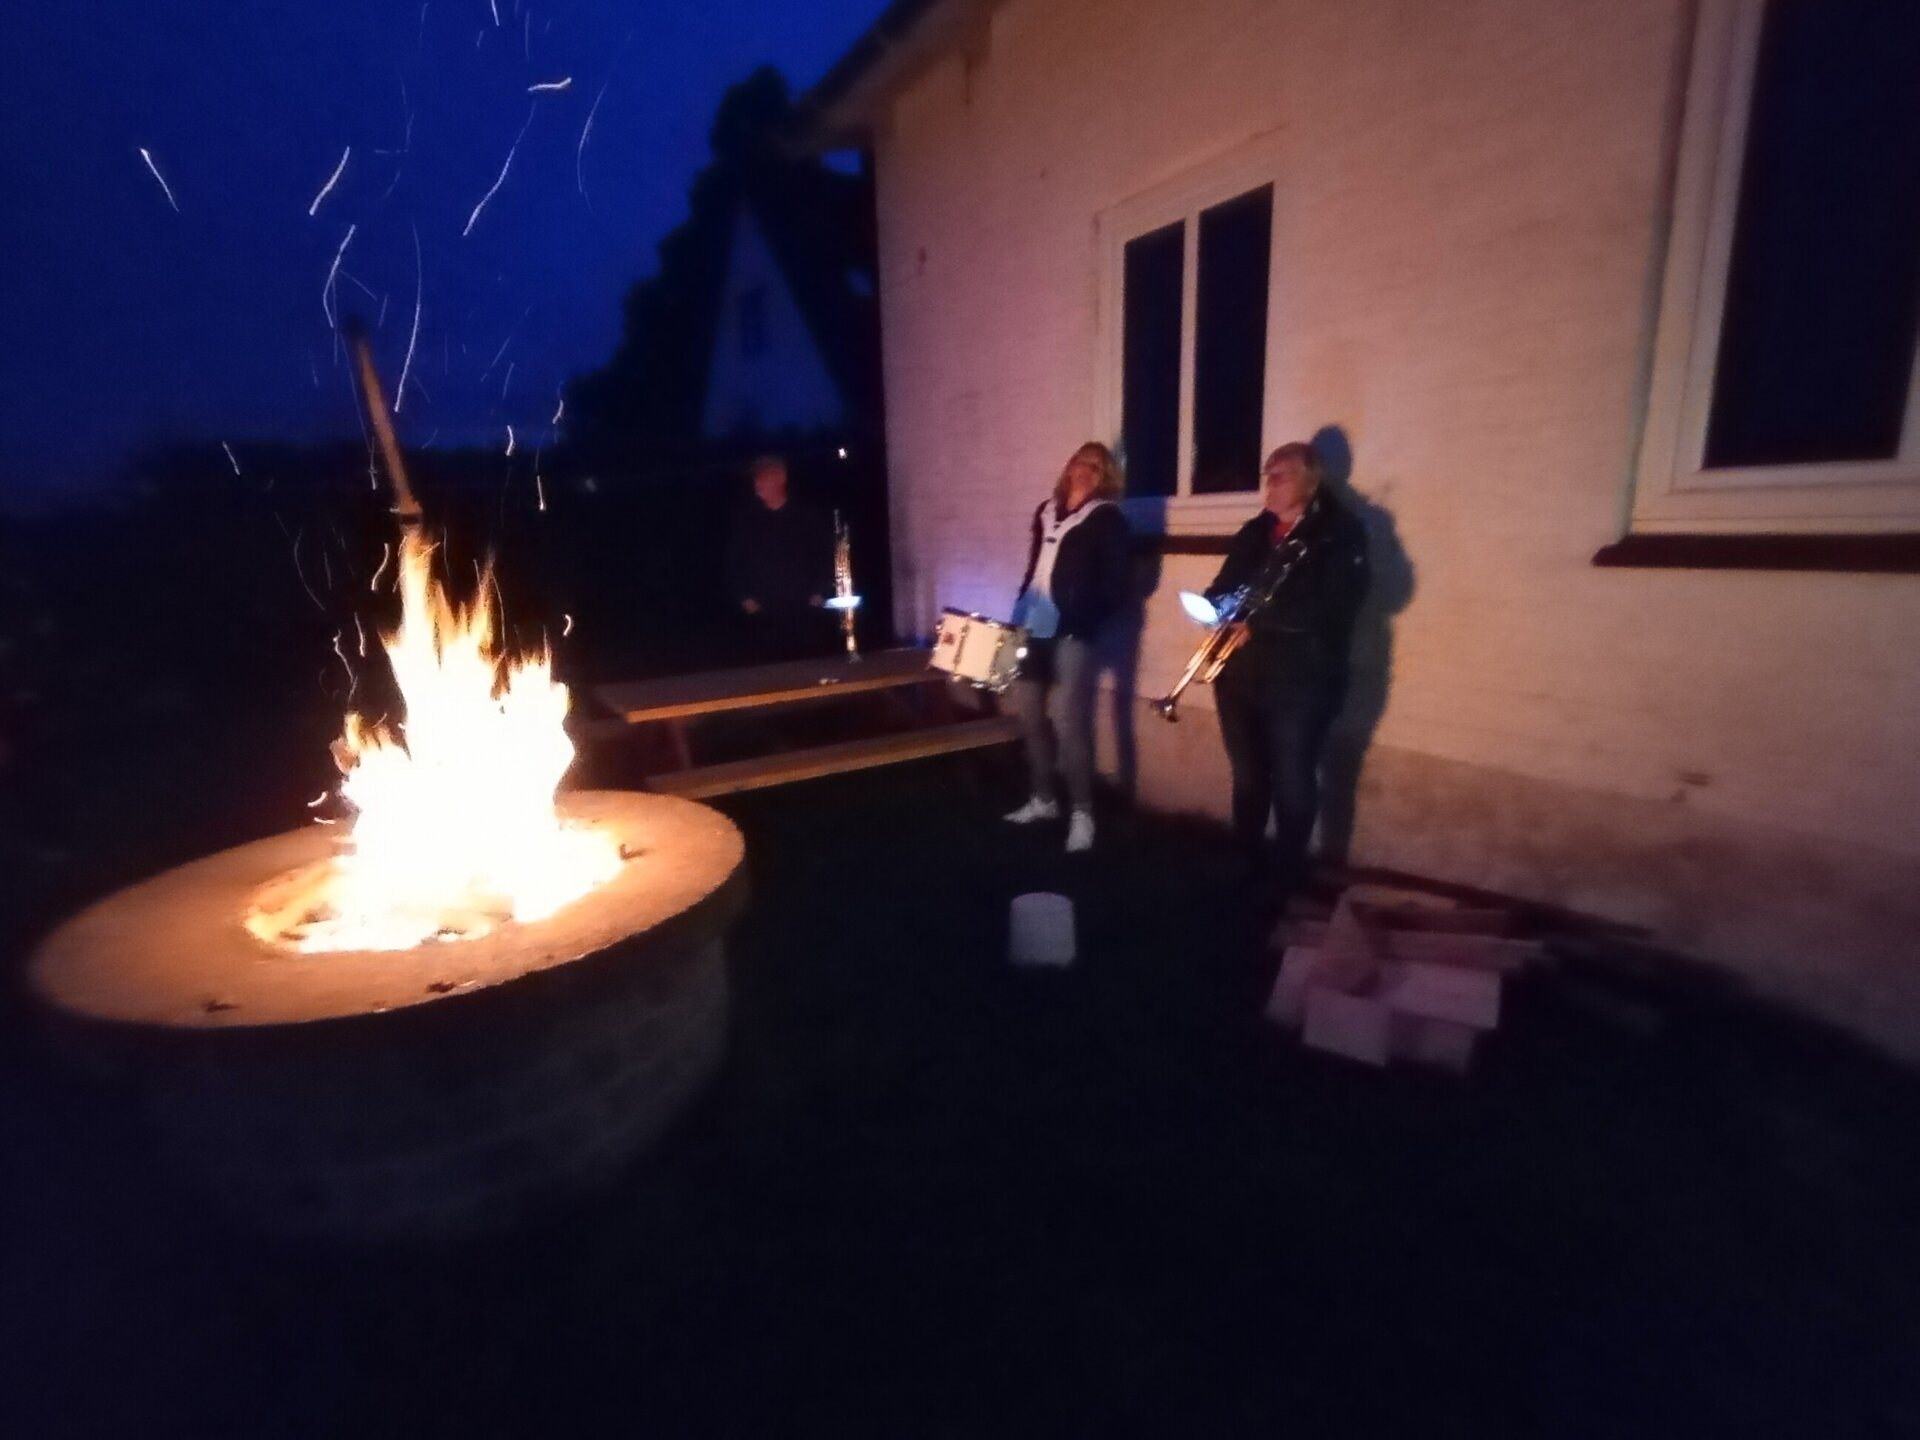 Musik am Lagerfeuer